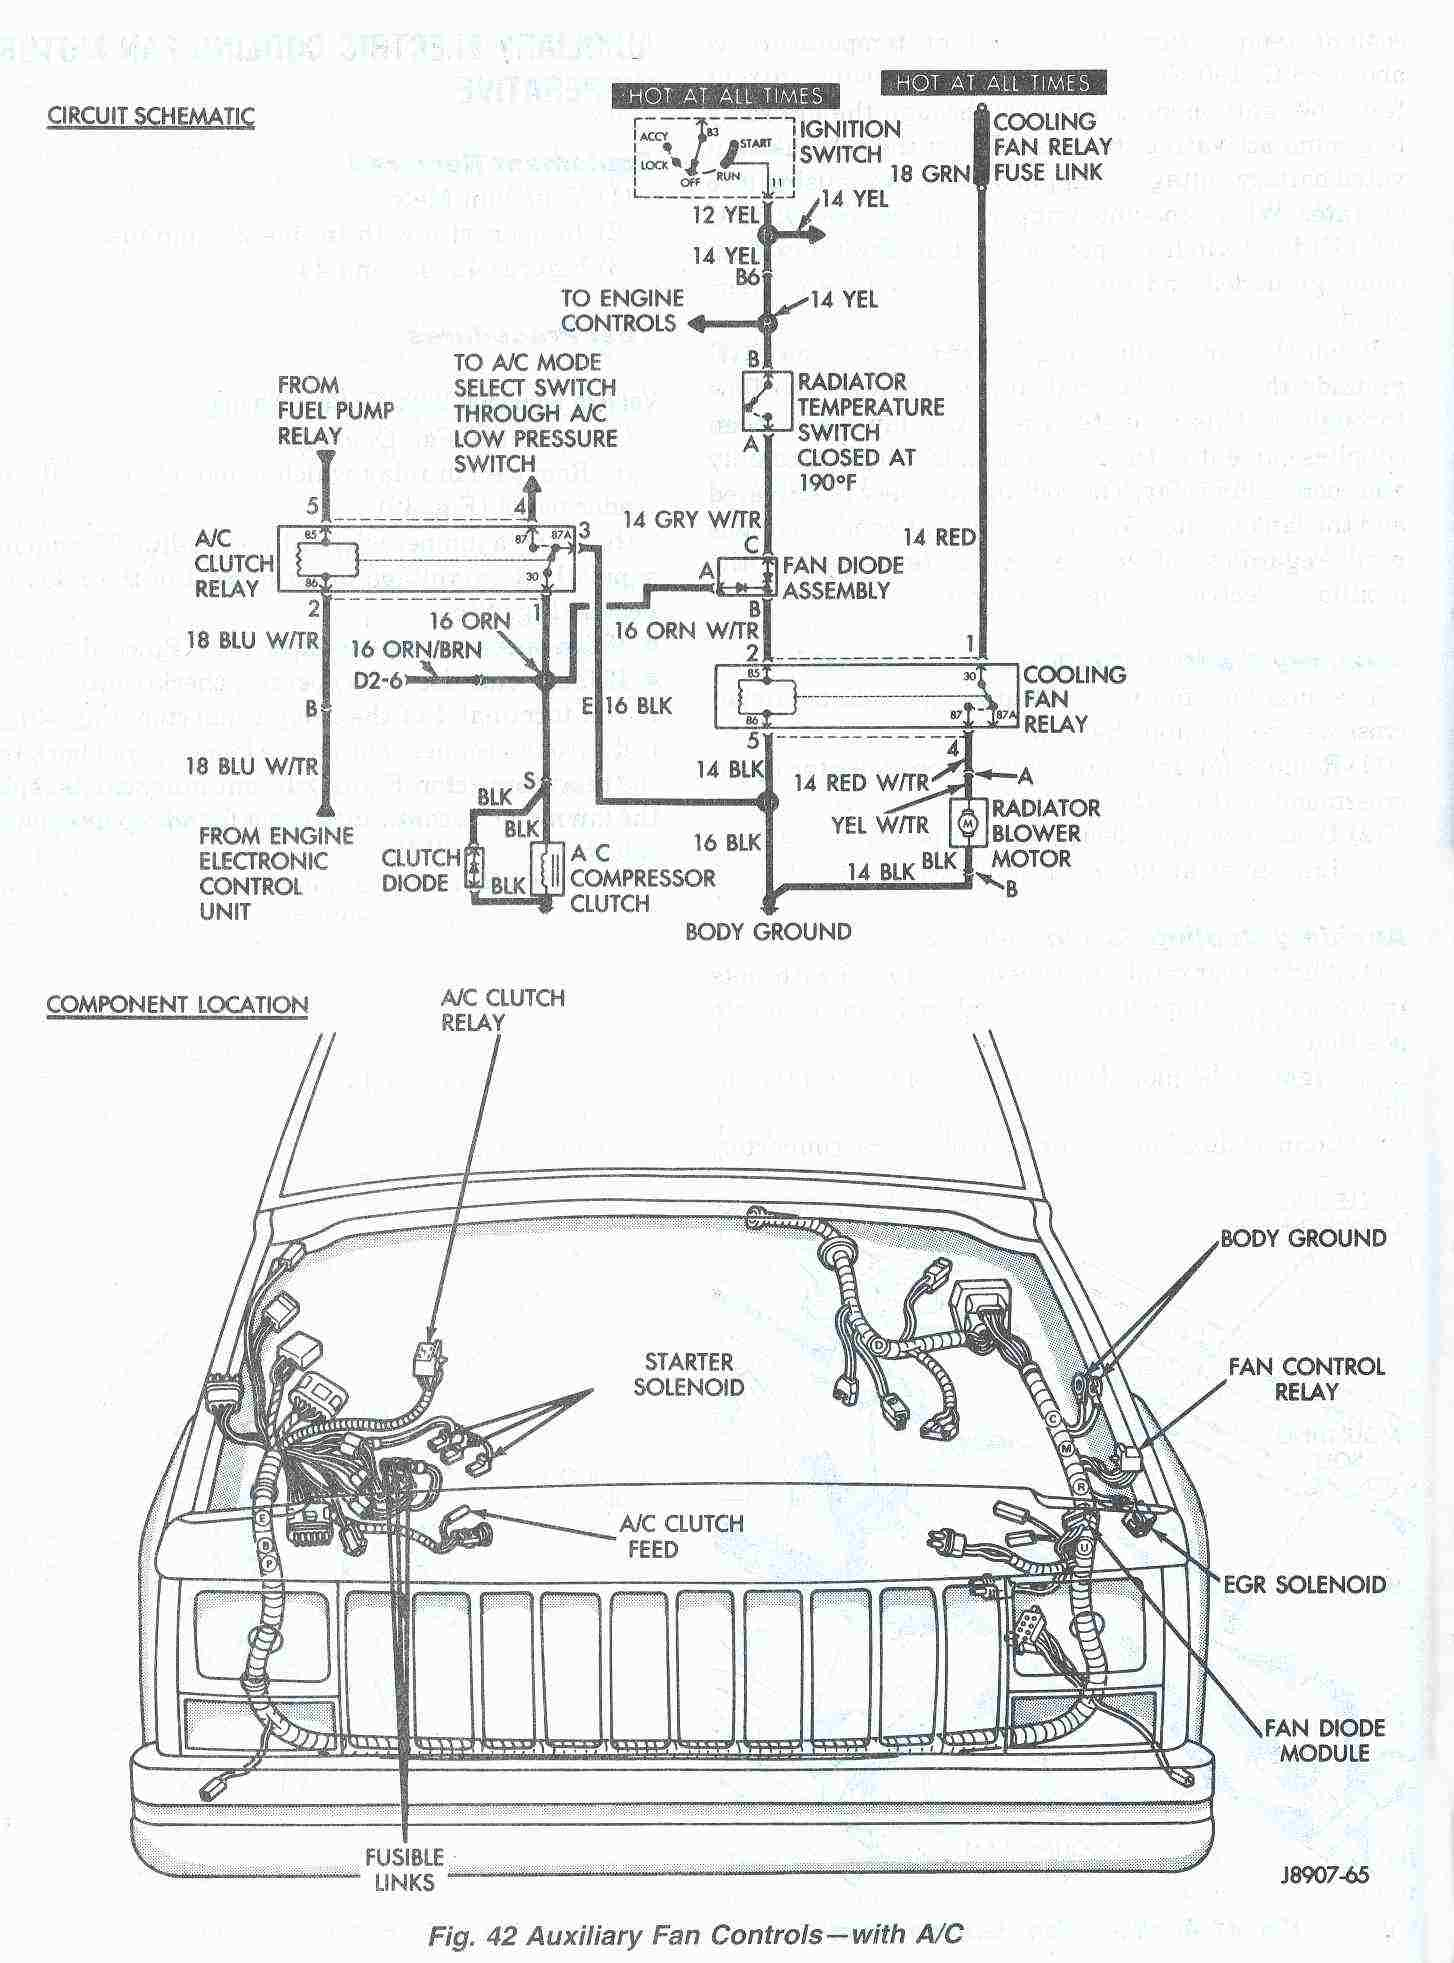 98 Grand Cherokee Cooling Fan Wiring Diagram - Wiring Diagram Explained - Cooling Fan Relay Wiring Diagram